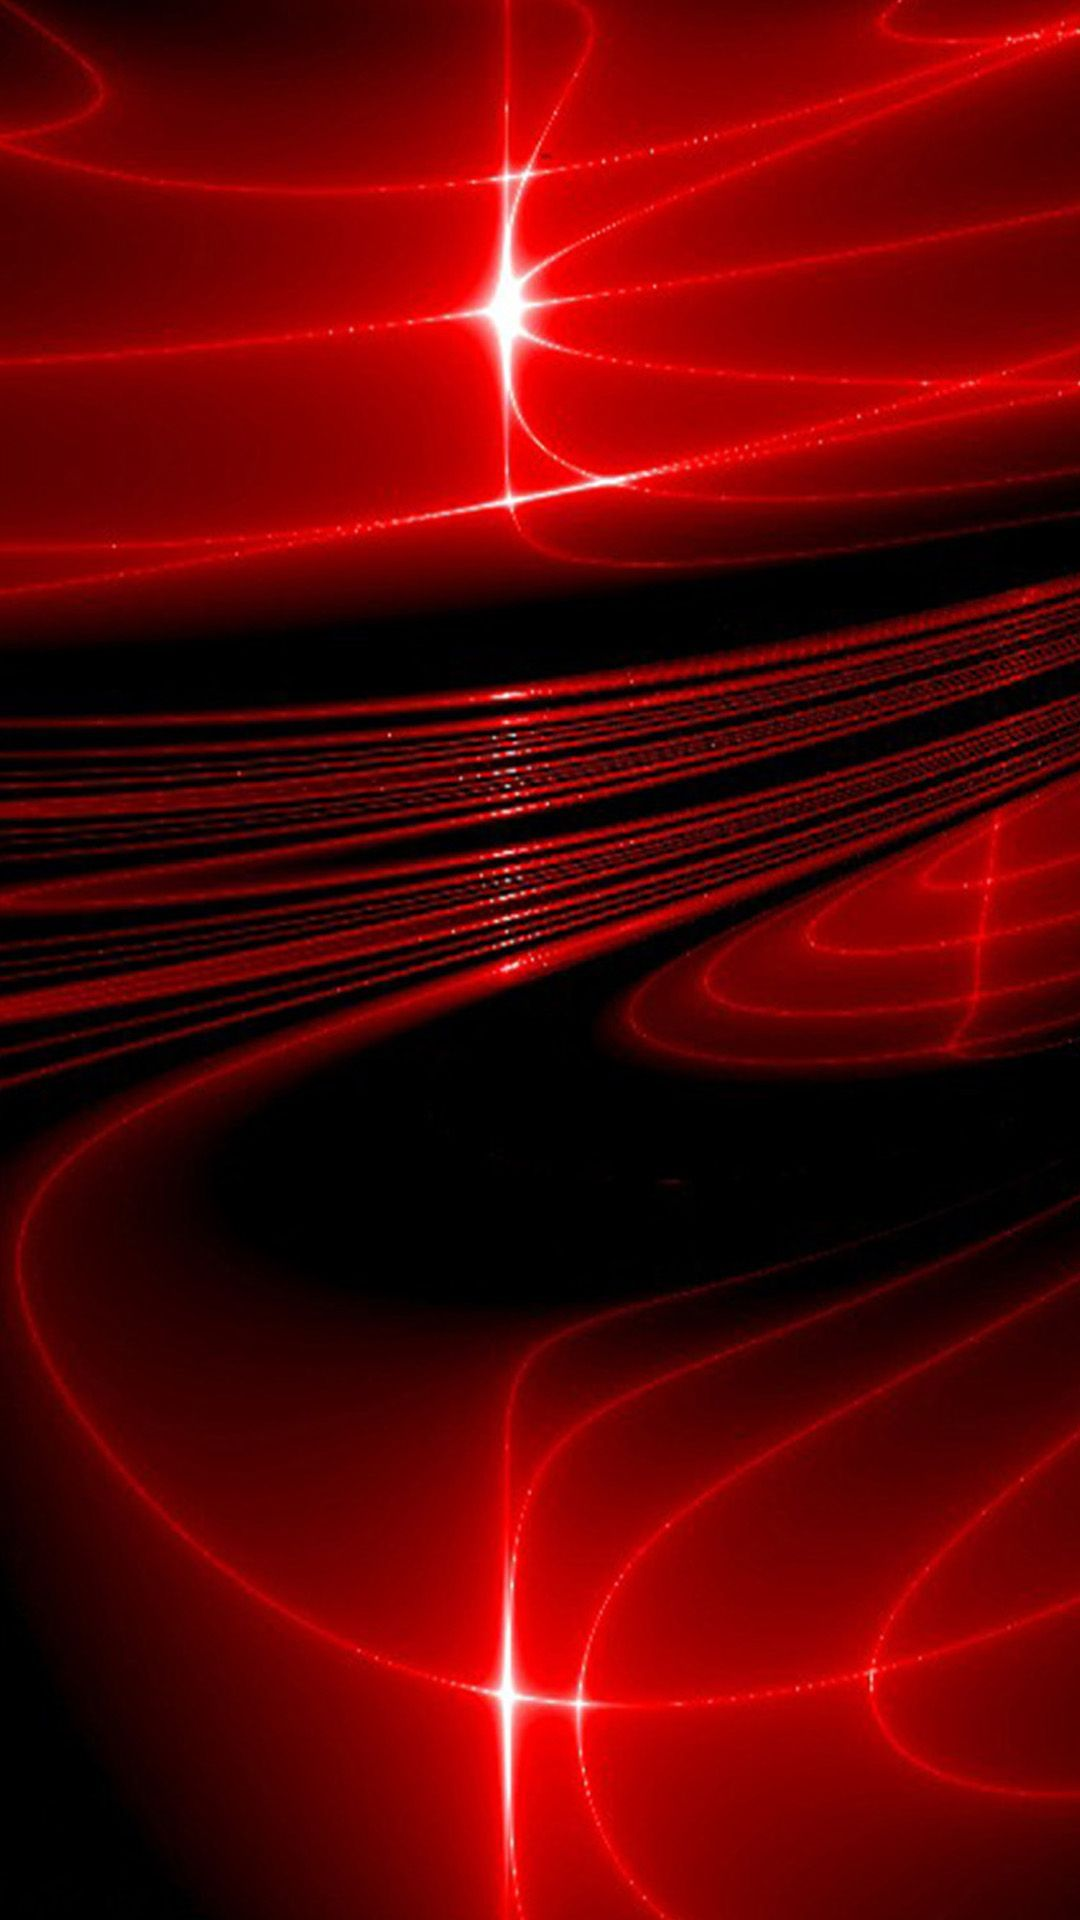 Red Screen Wallpapers Top Free Red Screen Backgrounds Wallpaperaccess